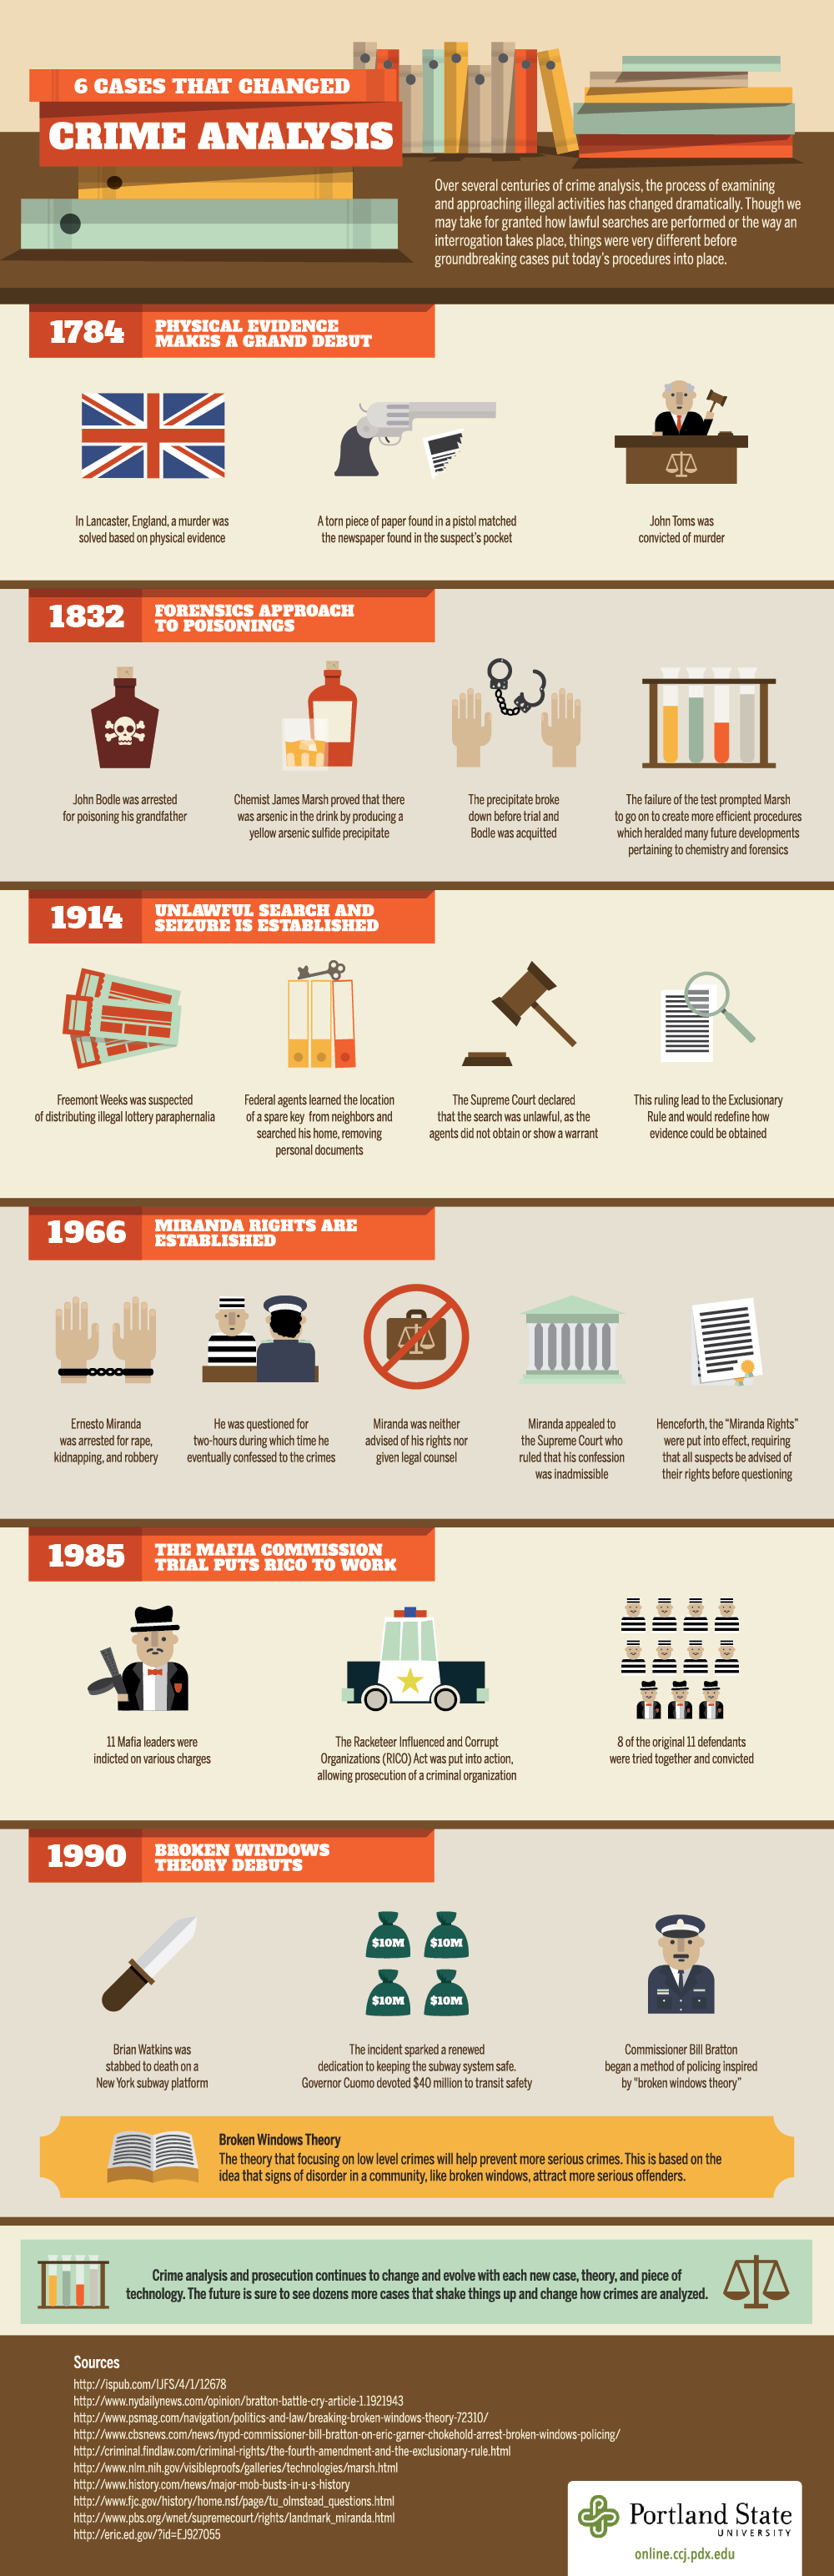 Crime Analysis Infographic How Cases Can Change Crime Analysis